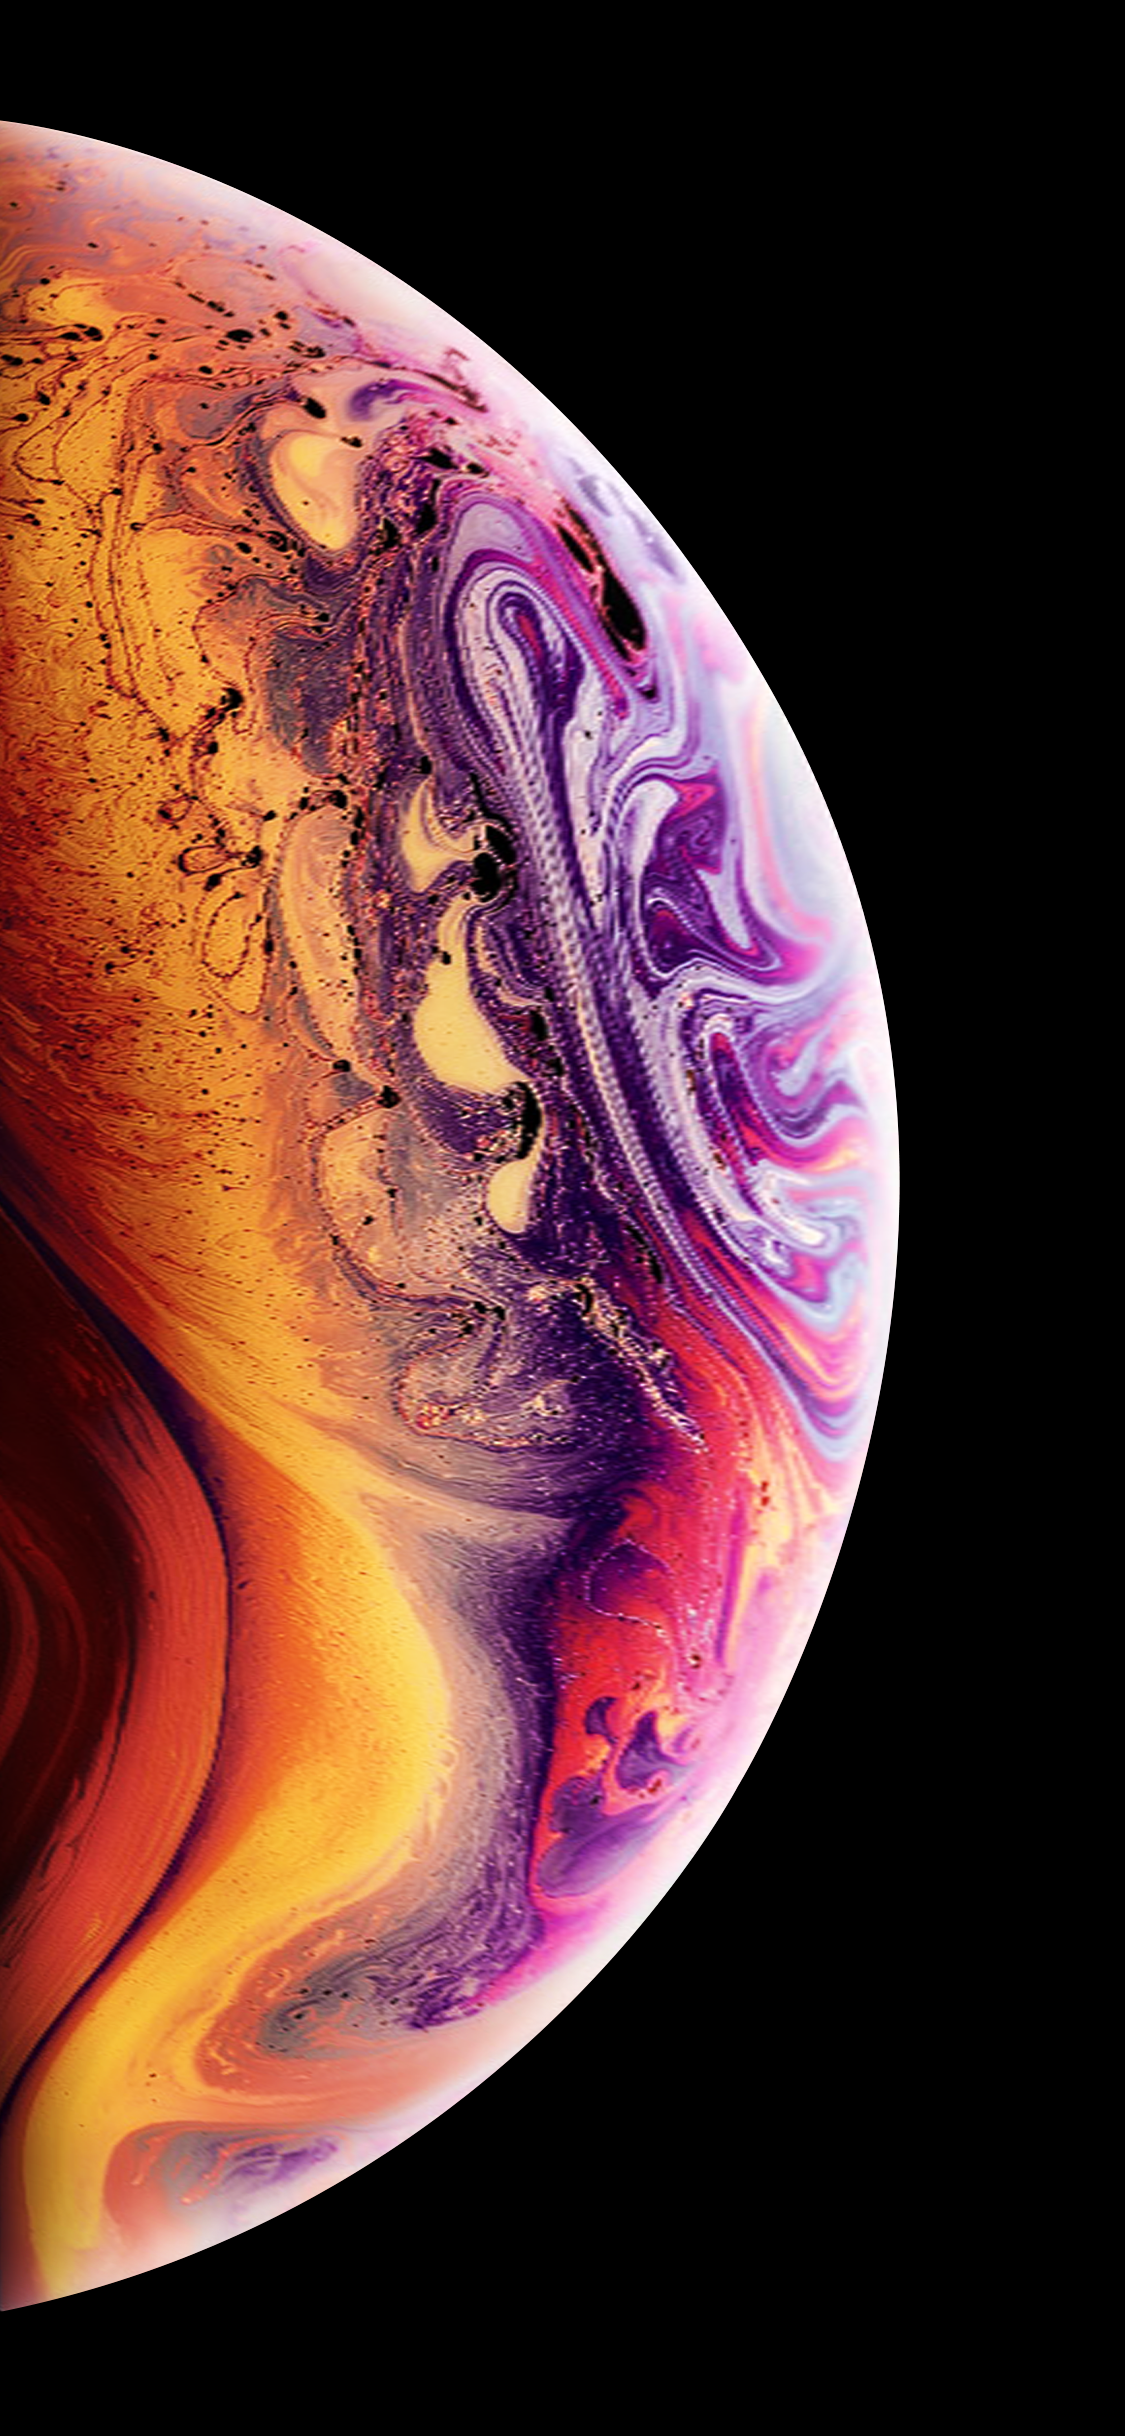 Download The 2018 Iphone Xs Soap Bubble Wallpaper